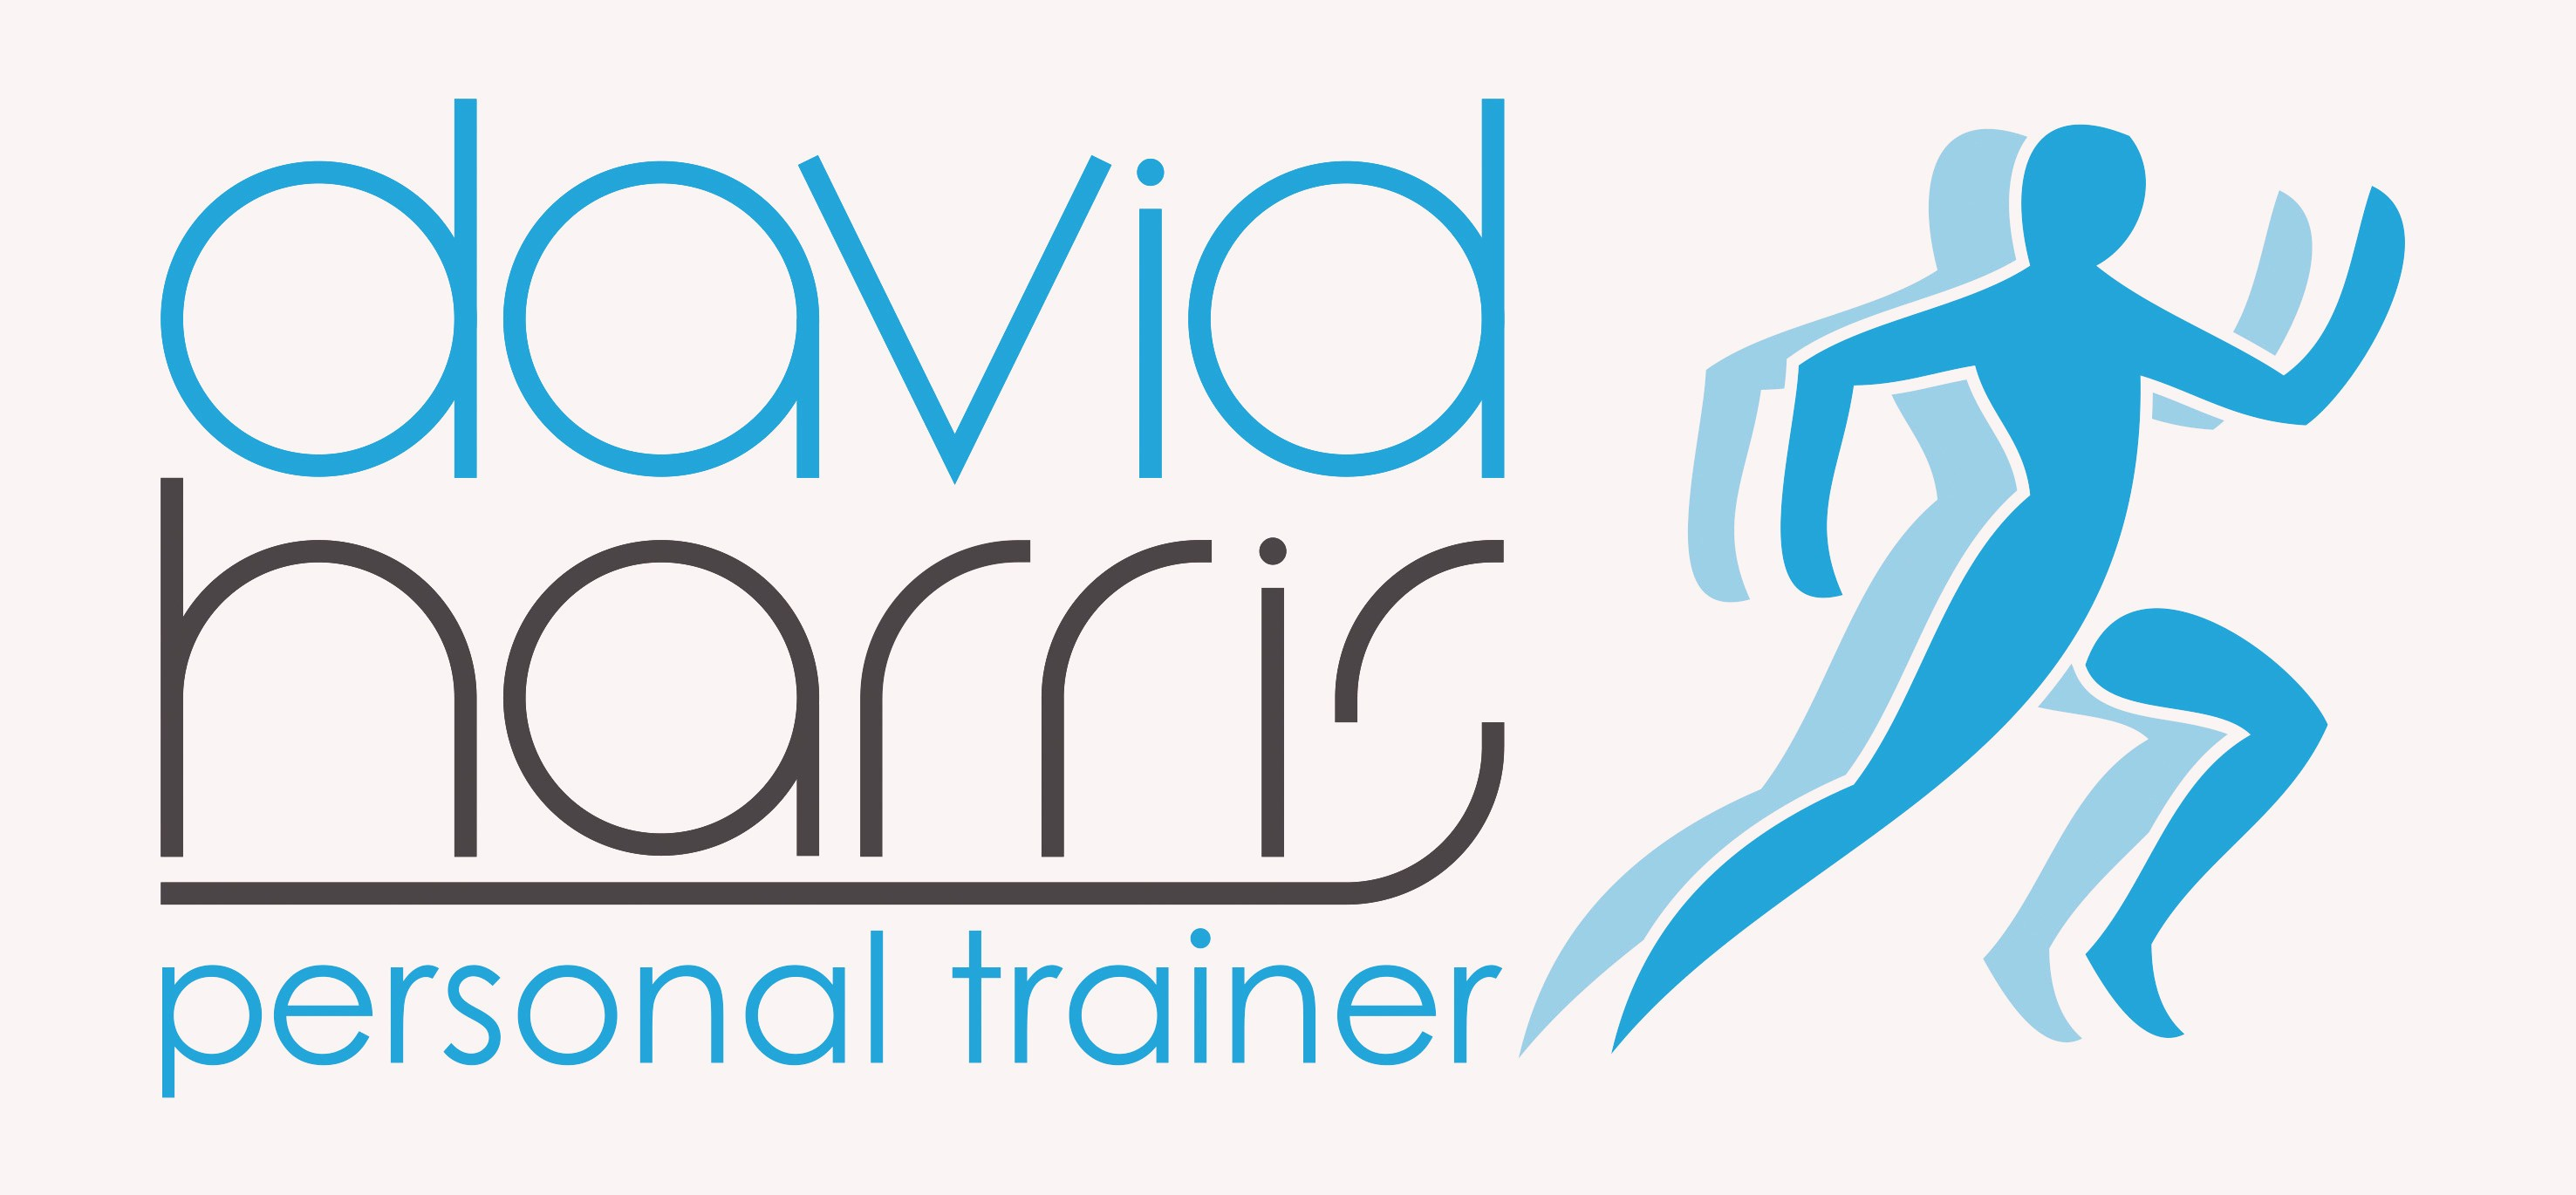 David Harris Personal Fitness Trainer